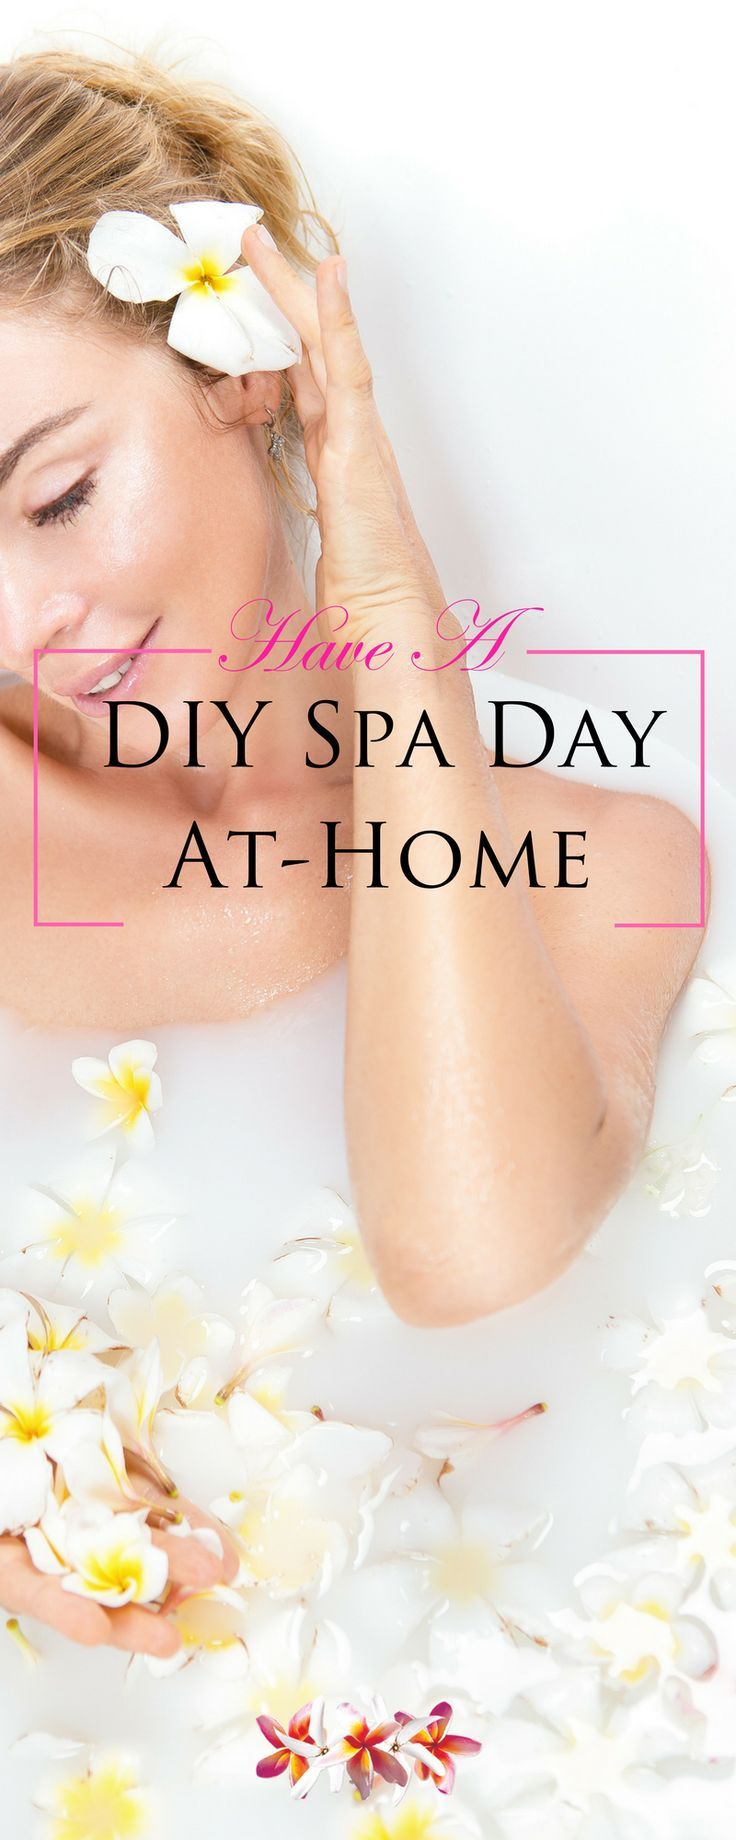 Bring out the candles, the soft music and your favorite natural products and create that perfect spa atmosphere, without ever leaving home! Explore 6 DIY spa day recipes at http://www.purefiji.com/blog/diy-home-spa/ | DIY Beauty Recipes | Natural Beauty